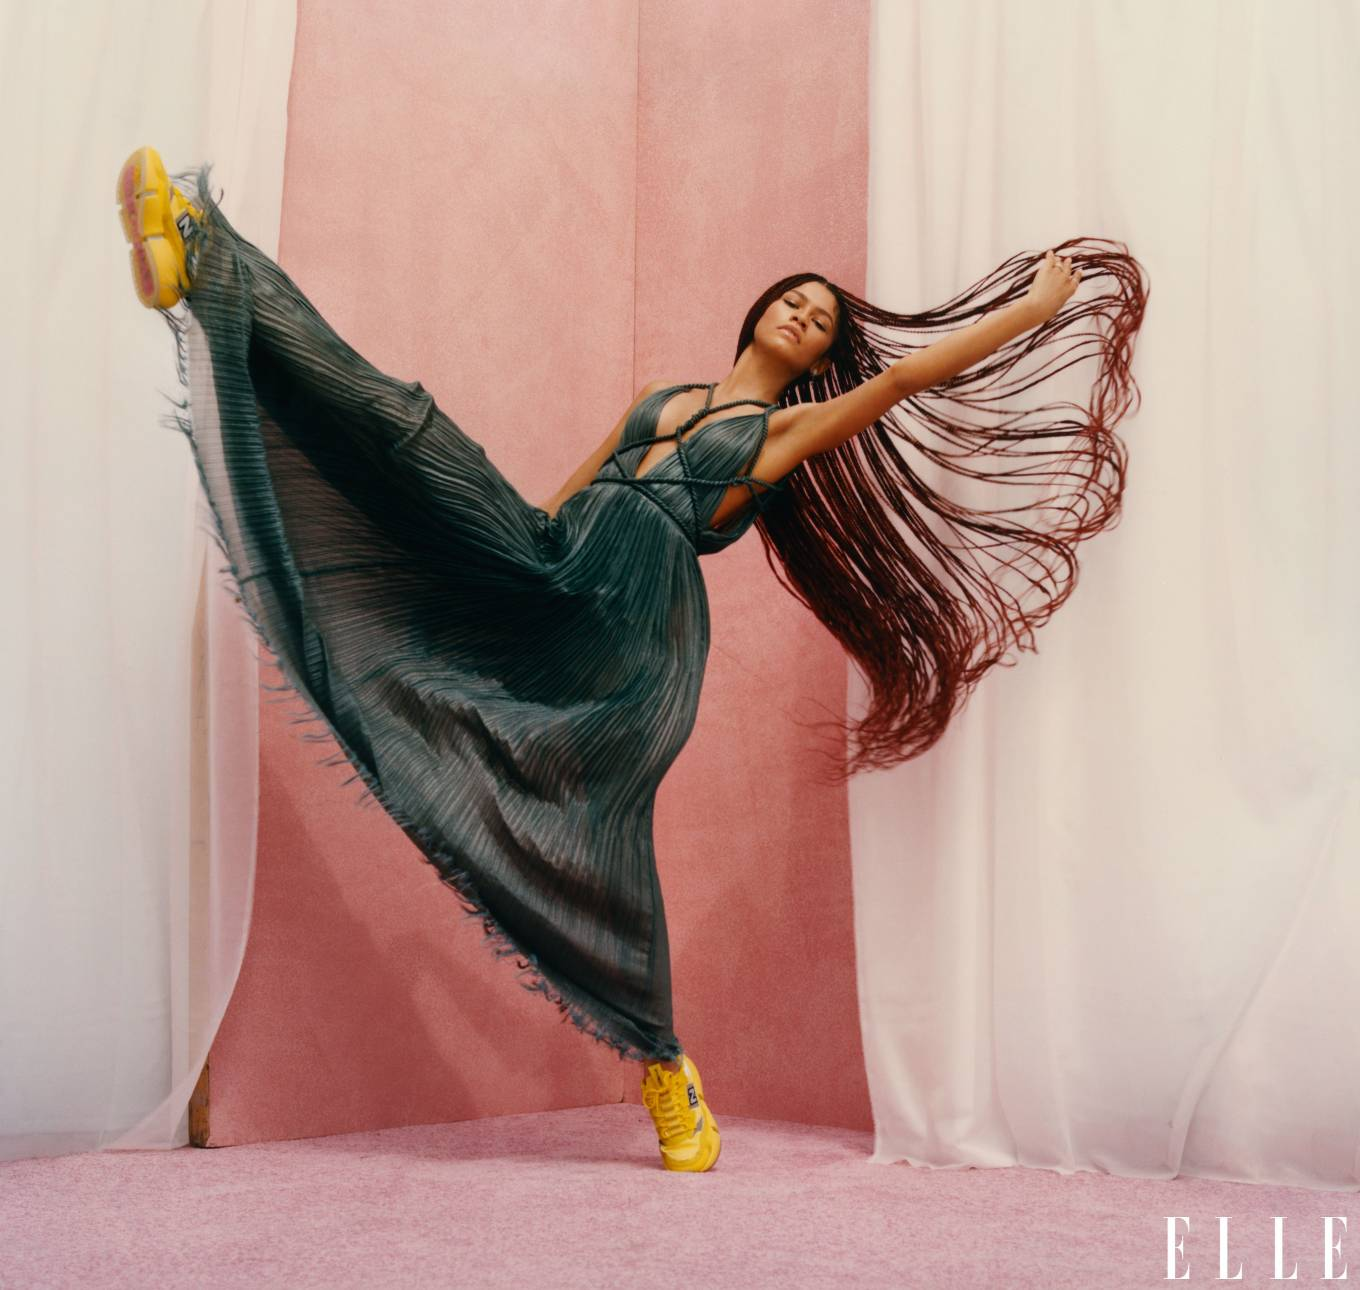 Zendaya Coleman - Elle Magazine (December 2020 - January 2021 issue)